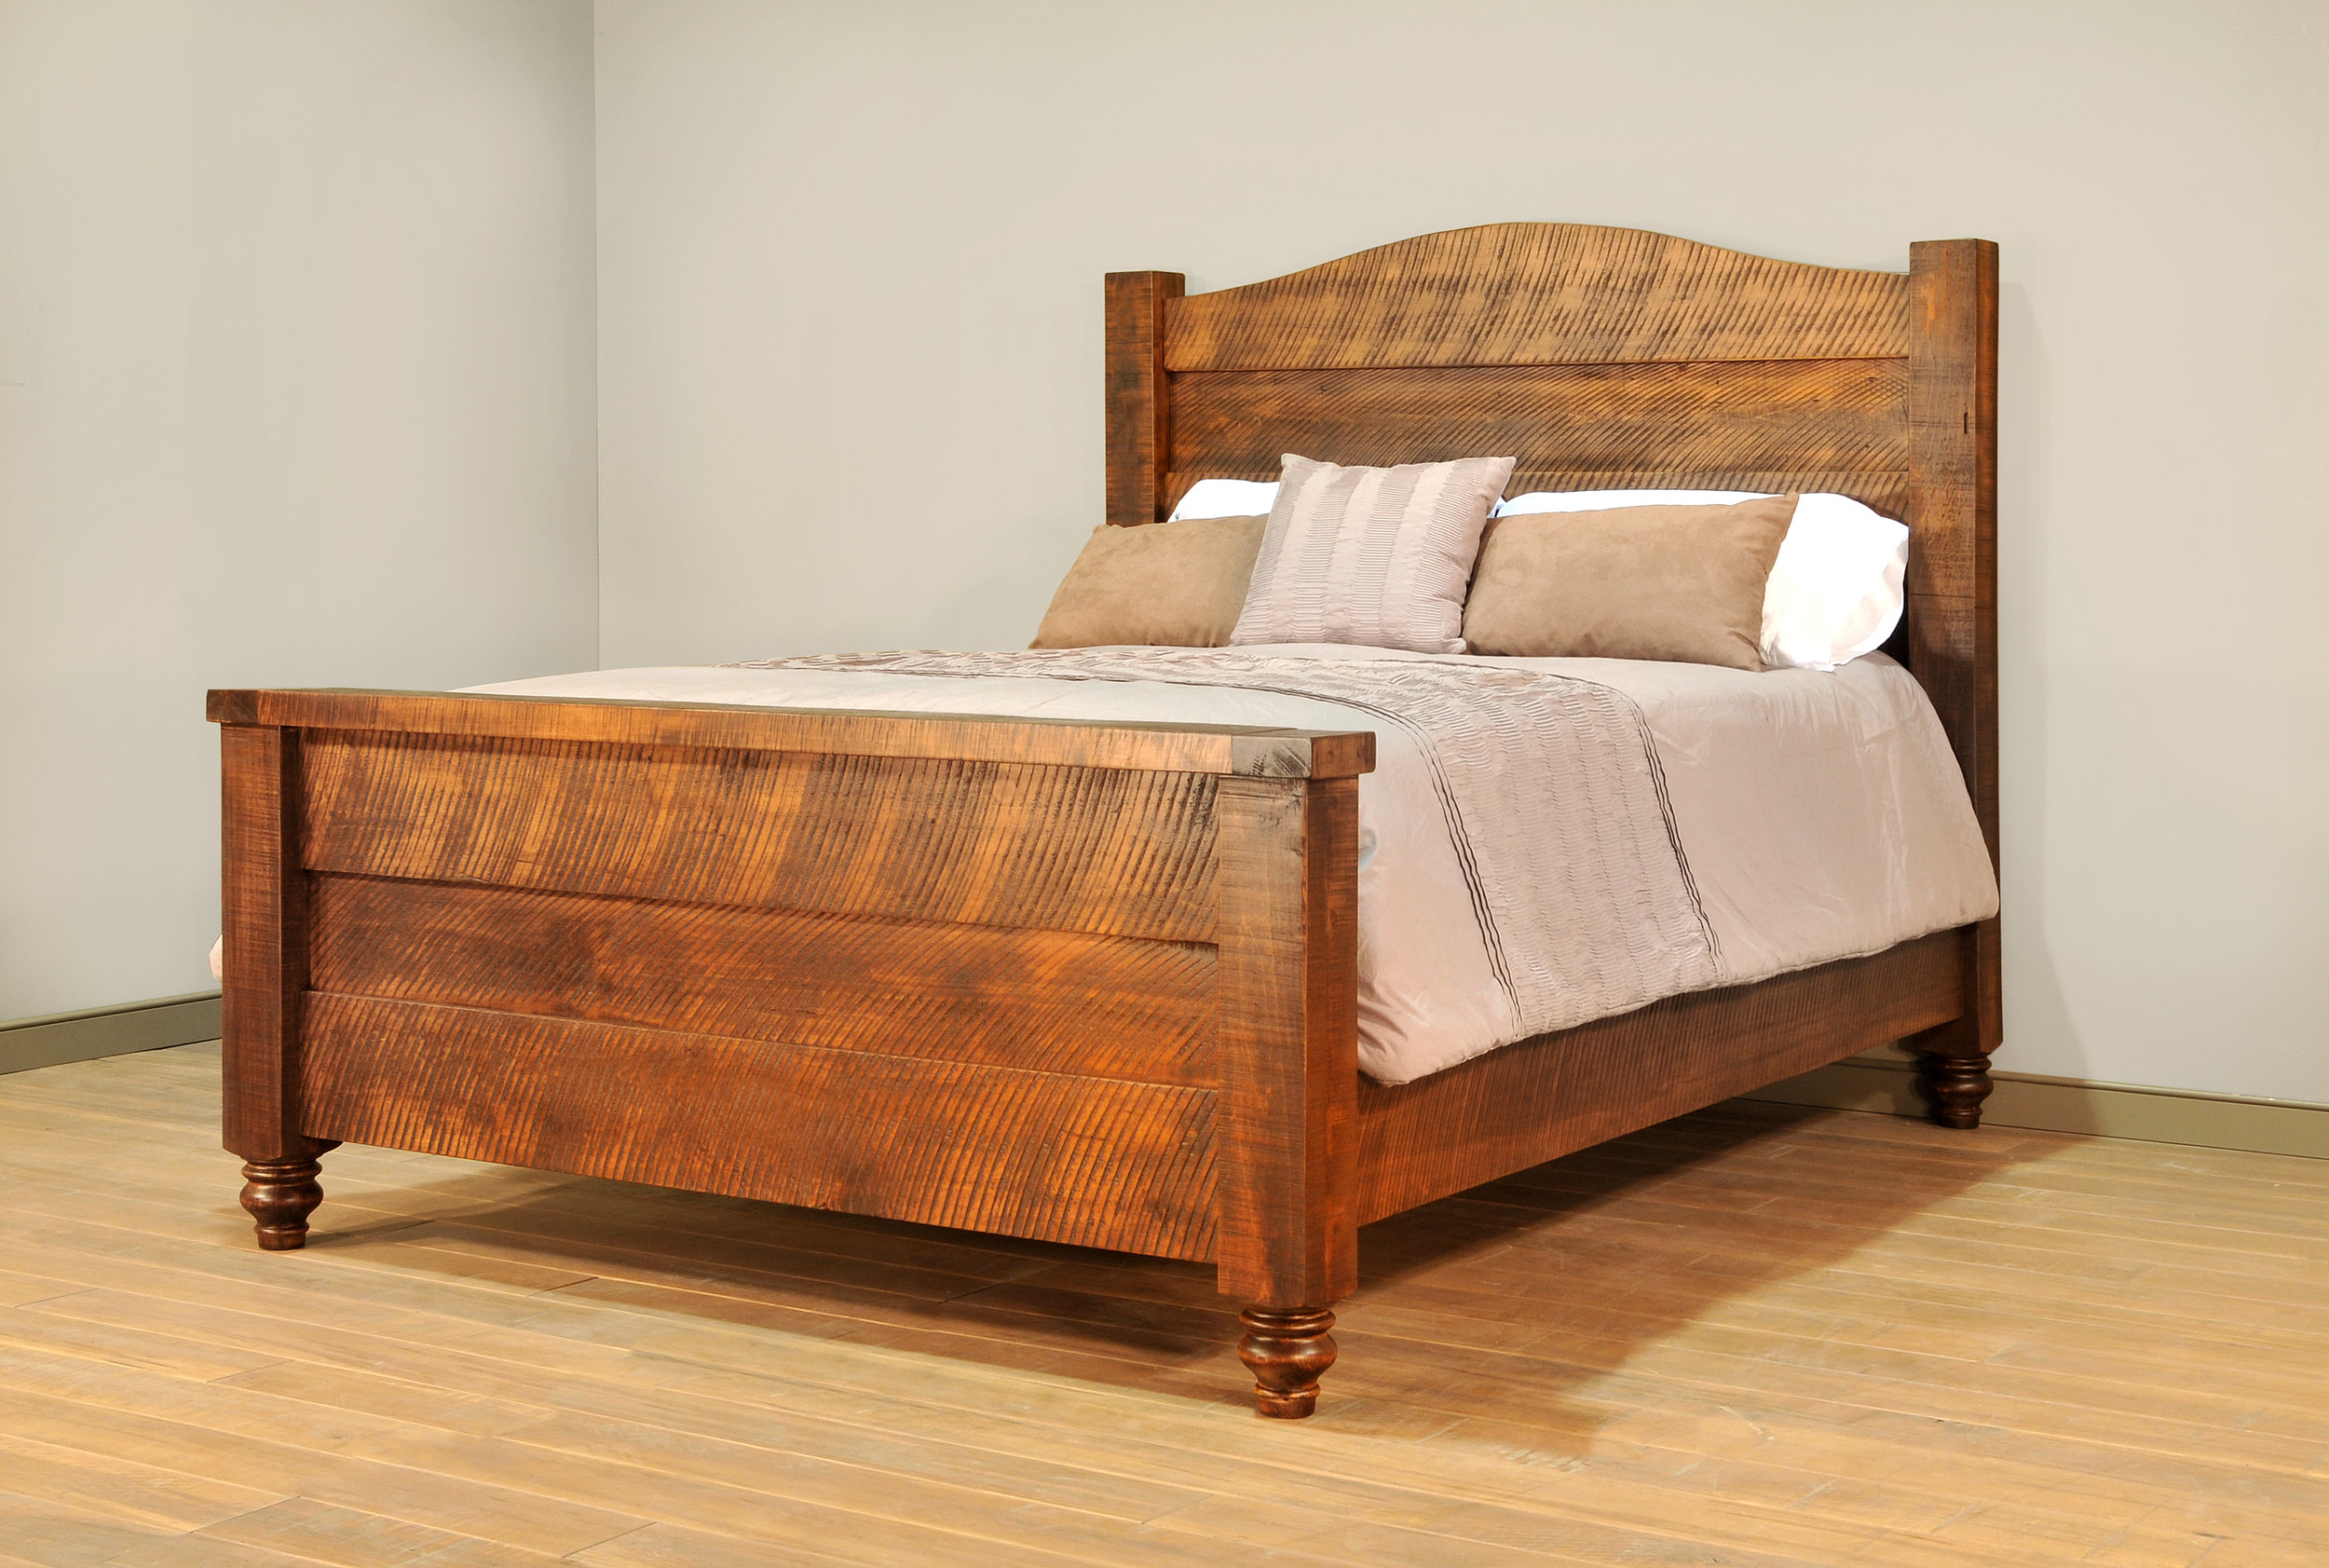 Tahoe bed for sale in Ohio